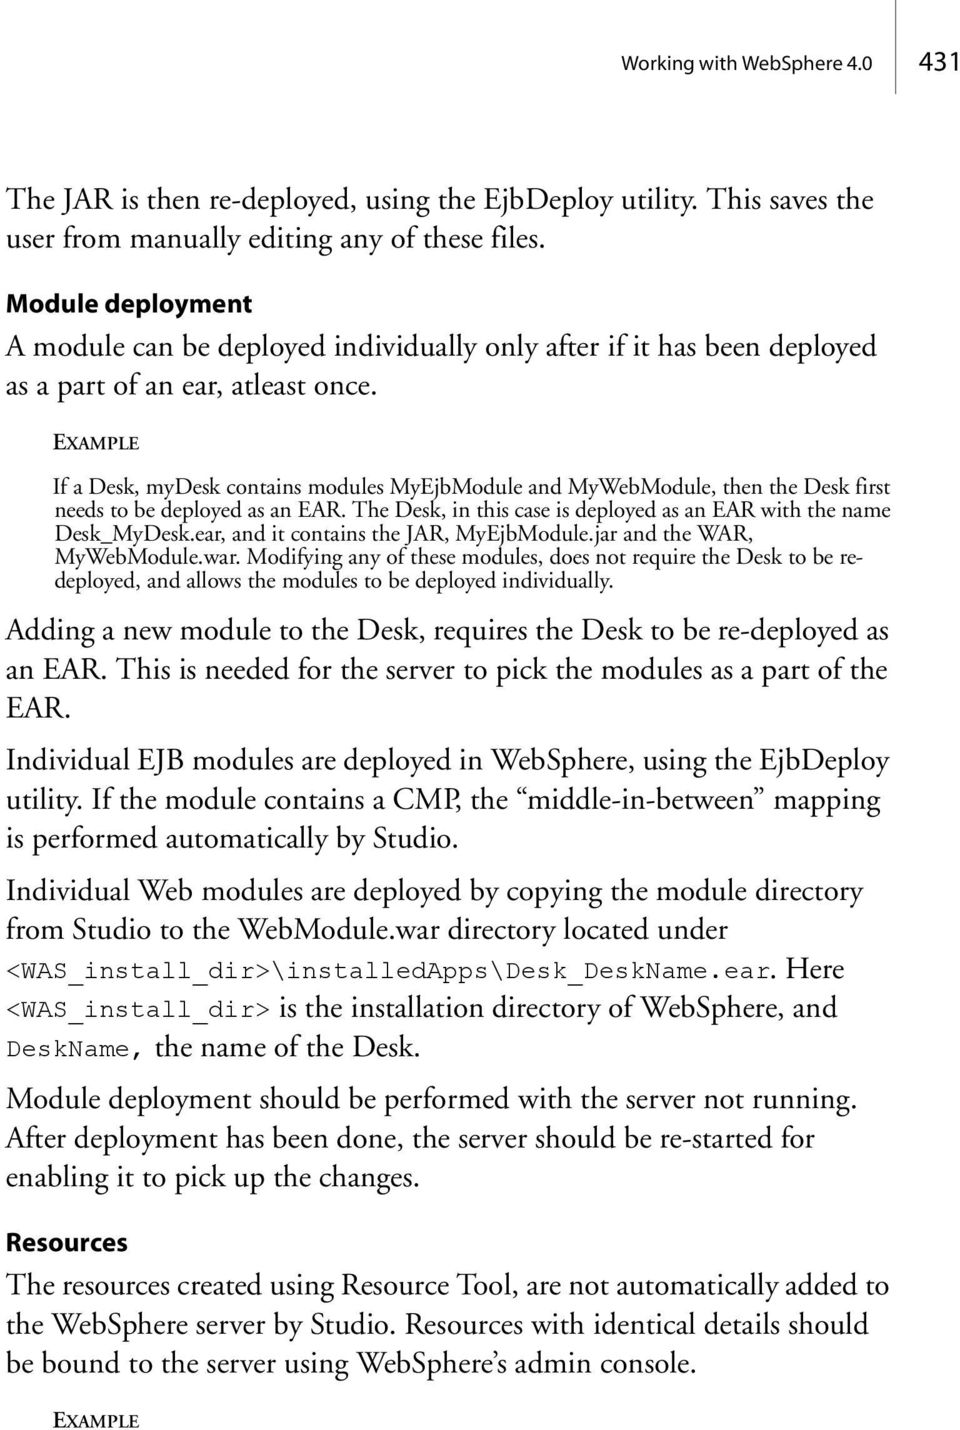 If a Desk, mydesk contains modules MyEjbModule and MyWebModule, then the Desk first needs to be deployed as an EAR. The Desk, in this case is deployed as an EAR with the name Desk_MyDesk.